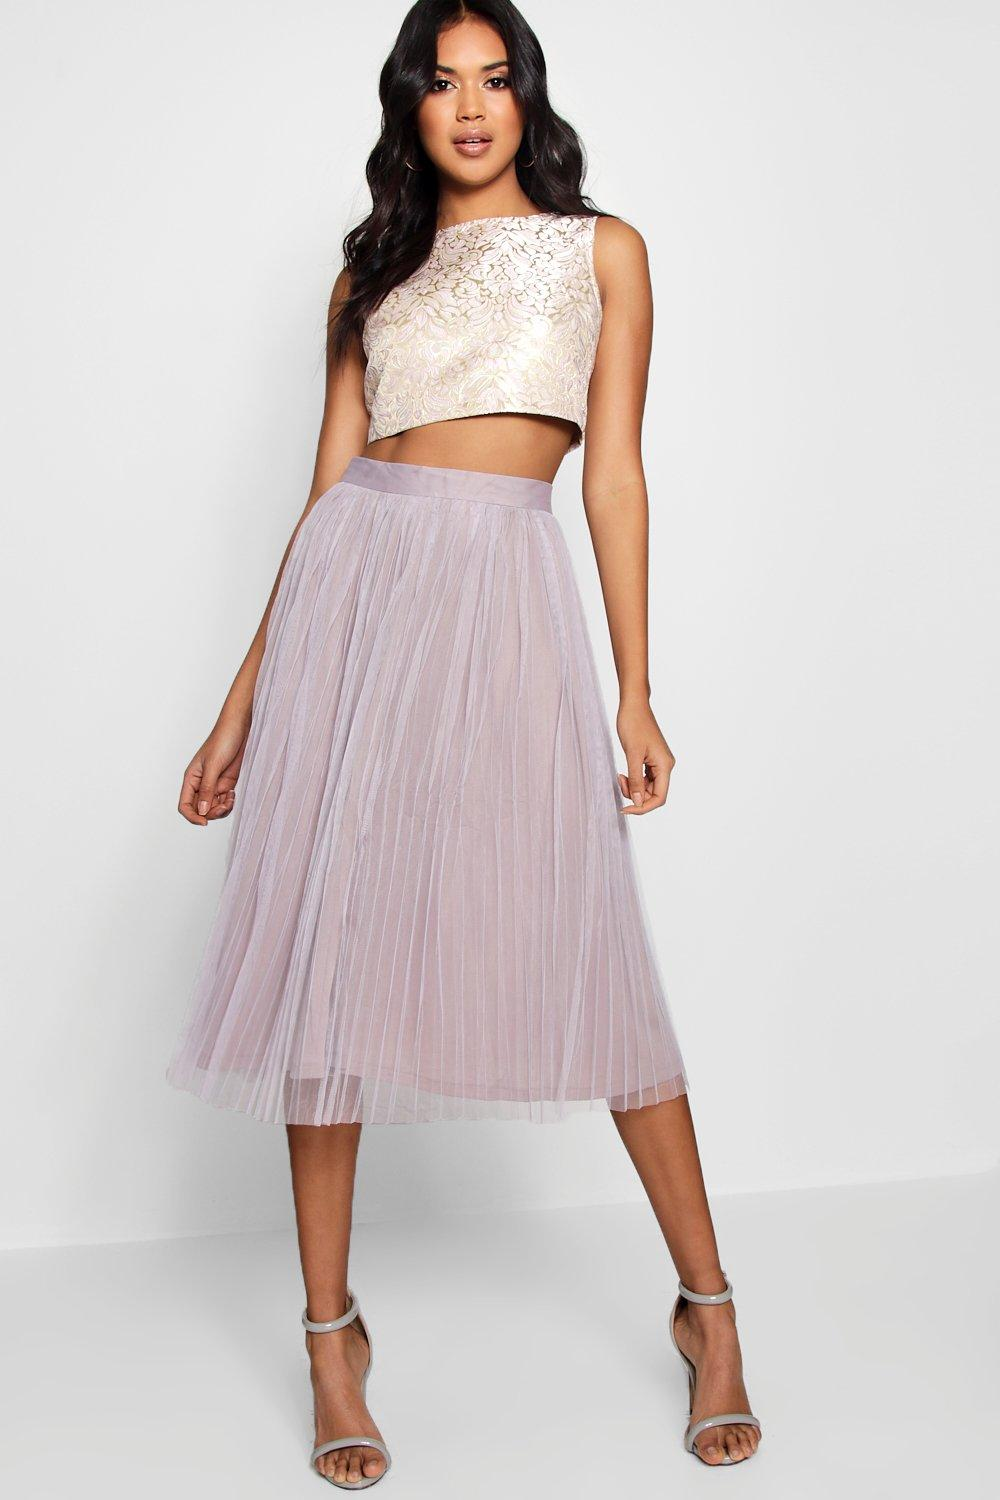 Boutique May Jacquard Top Midi Skirt Co-Ord Set at boohoo.com